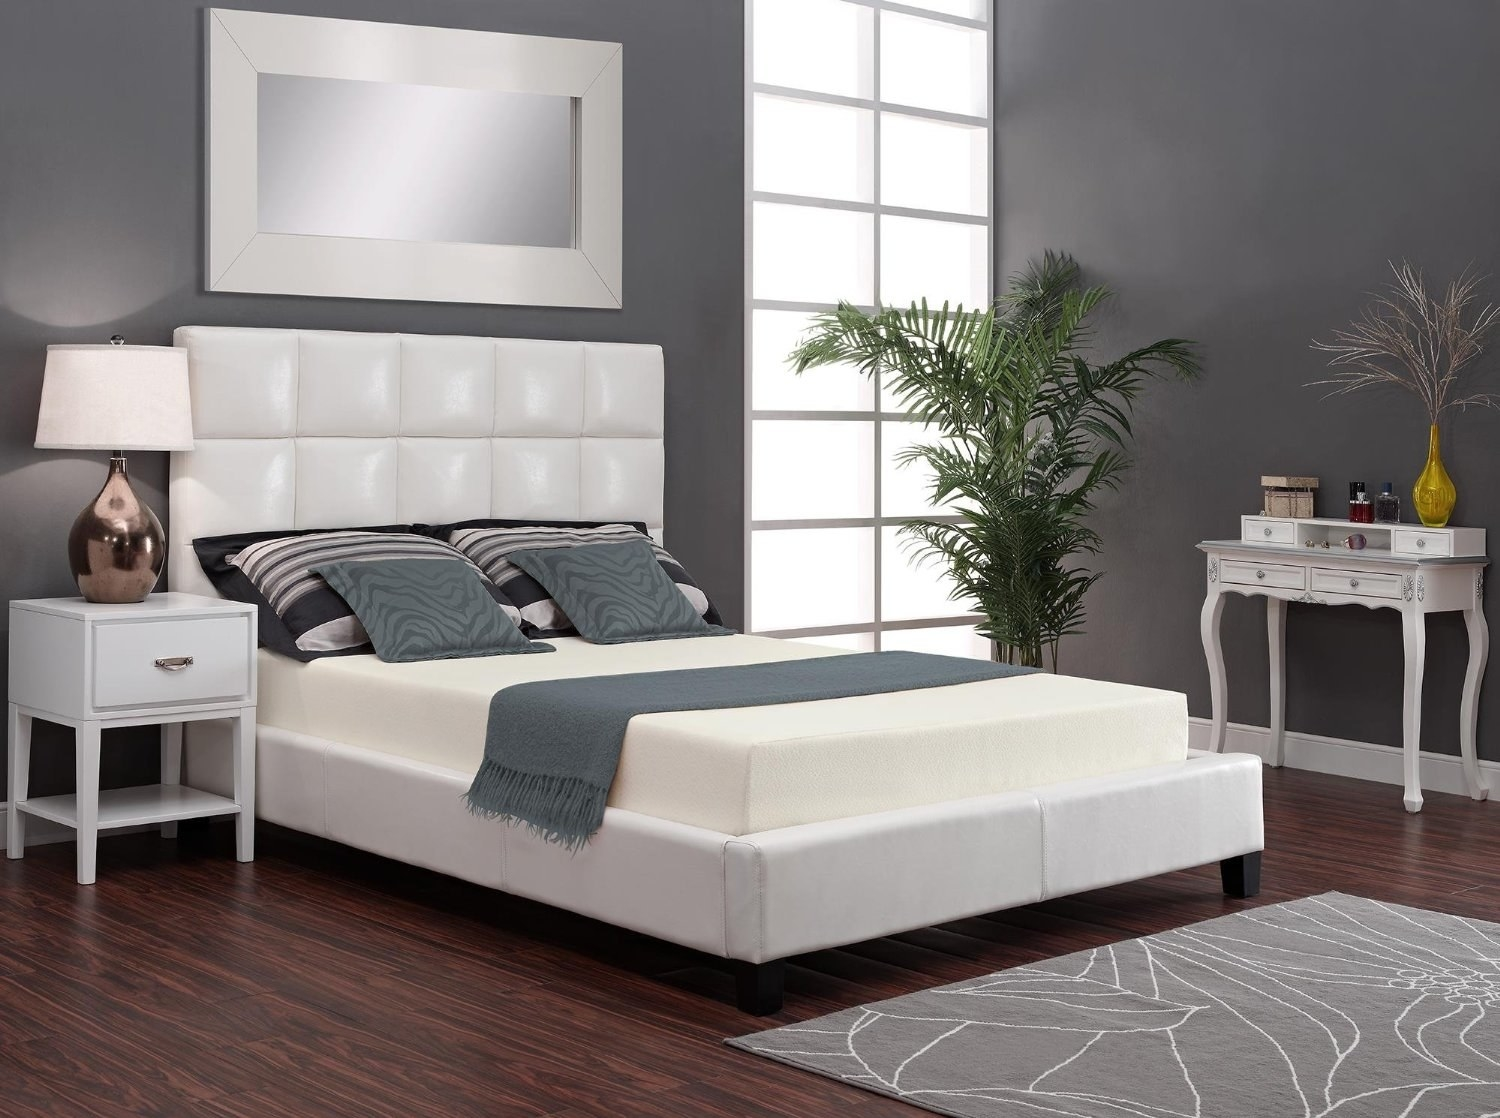 4 this lowvoc memory foam model that ships rolled up but puffs up to a firm sleeper